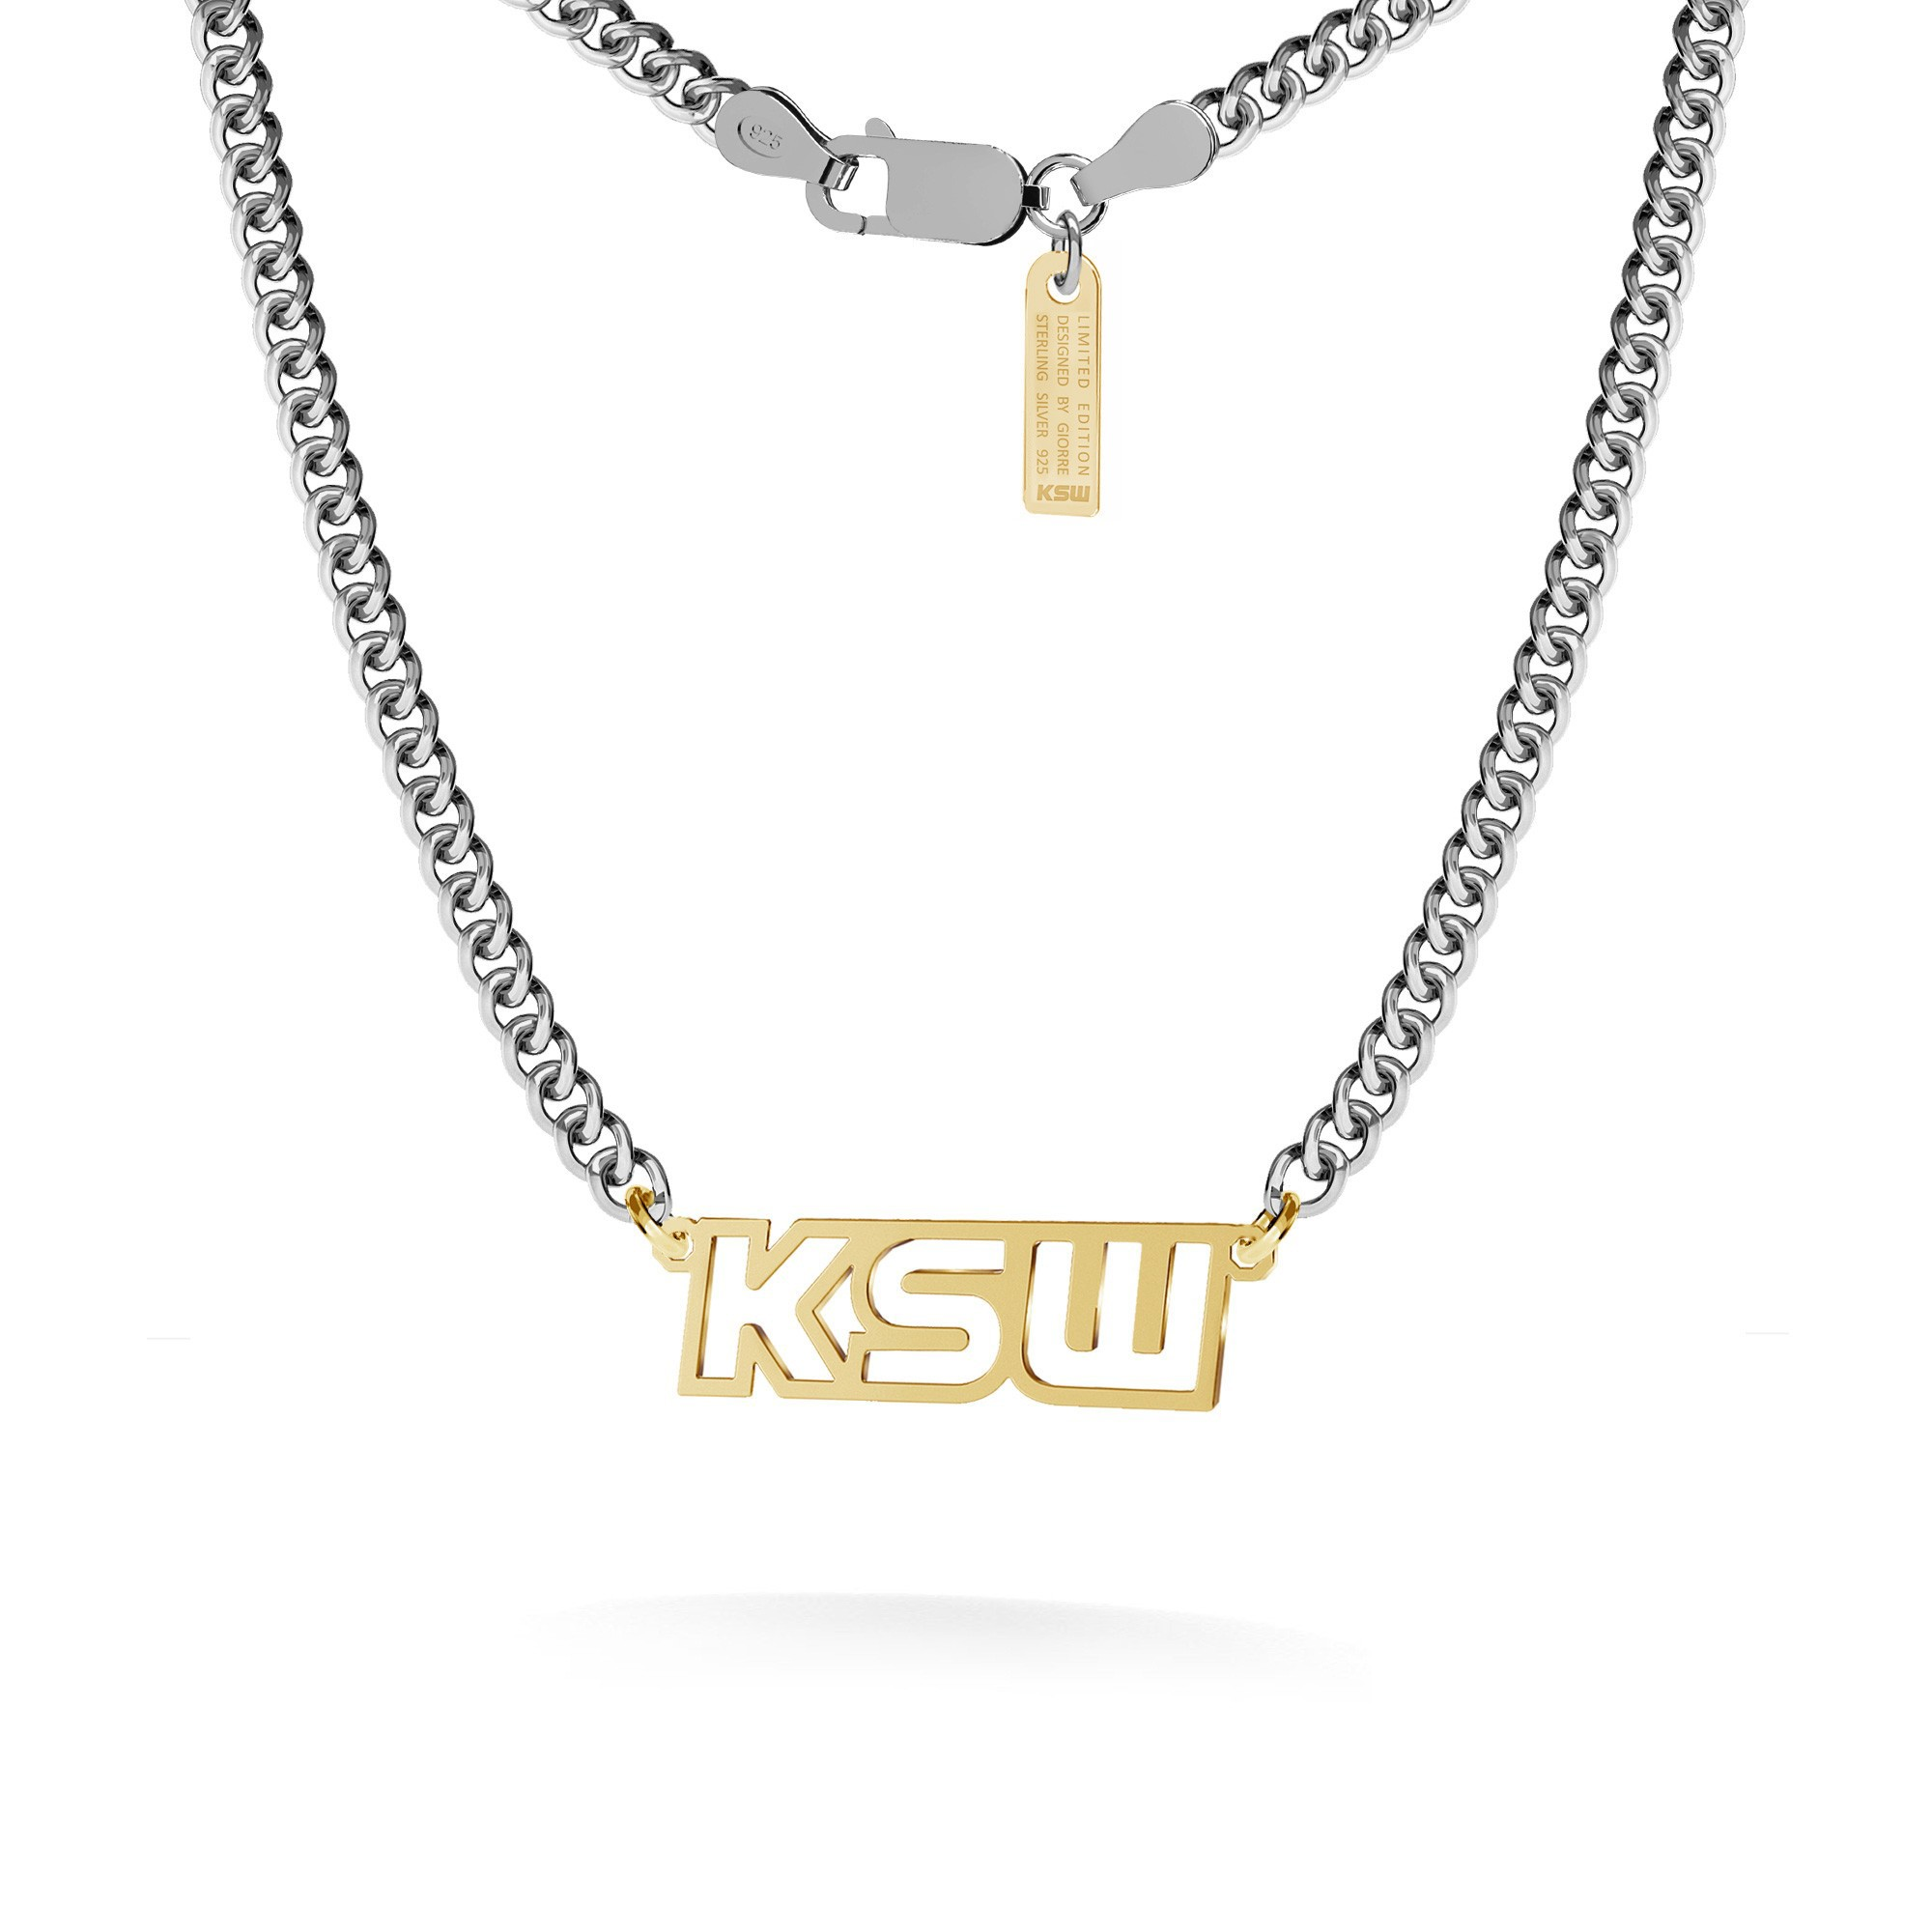 Logo necklace with KSW sign, curb chain, silver 925